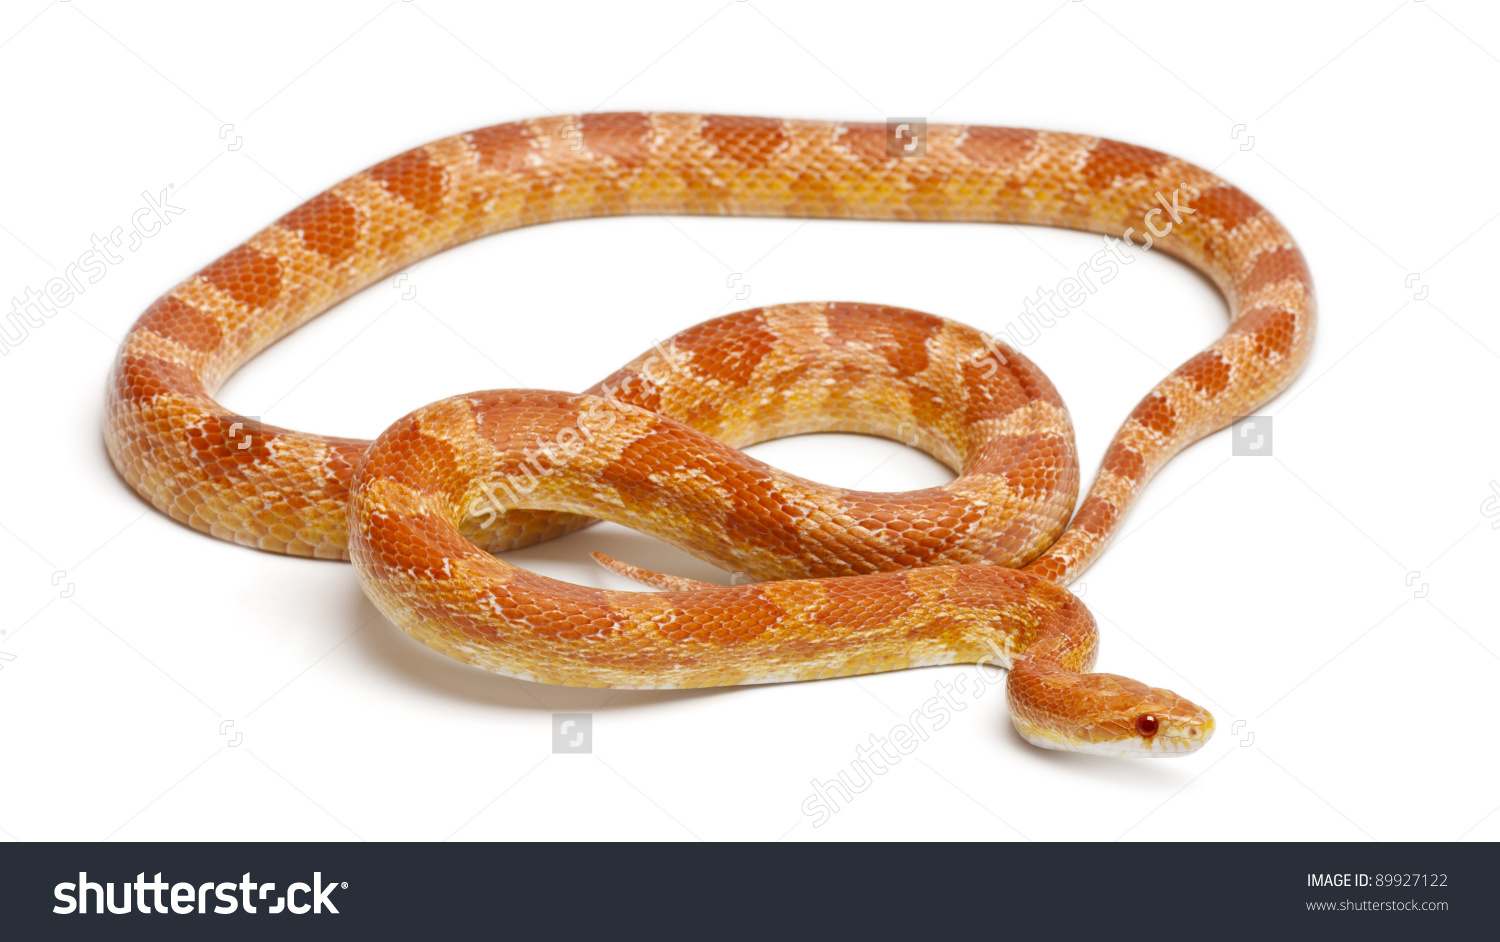 Corn Snake clipart #1, Download drawings